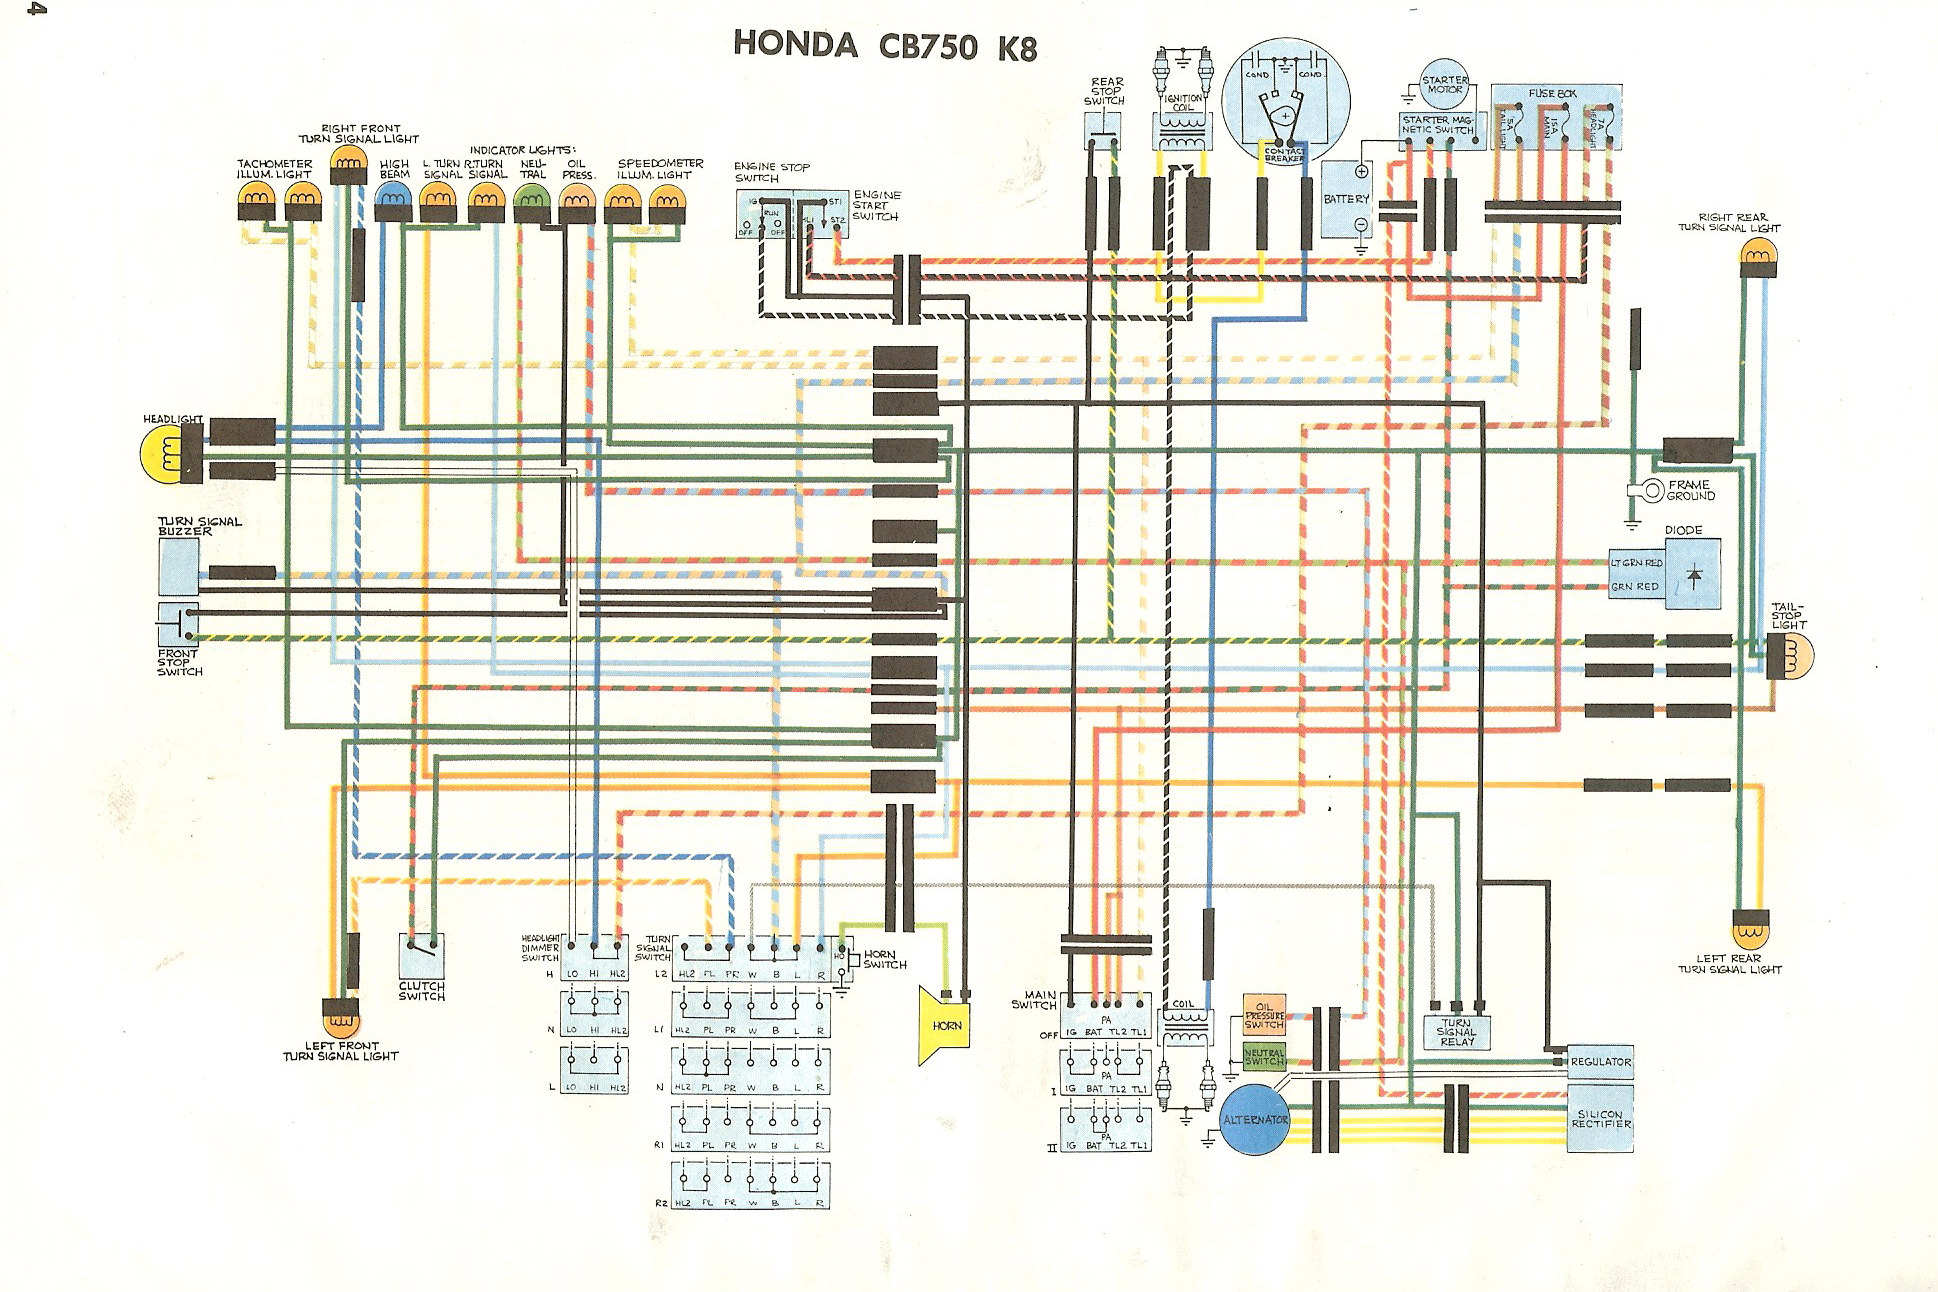 WD750K8 1978 honda cb750 wiring diagram honda cb 700 ignition wire diagram 1976 cb550f wiring diagram at fashall.co